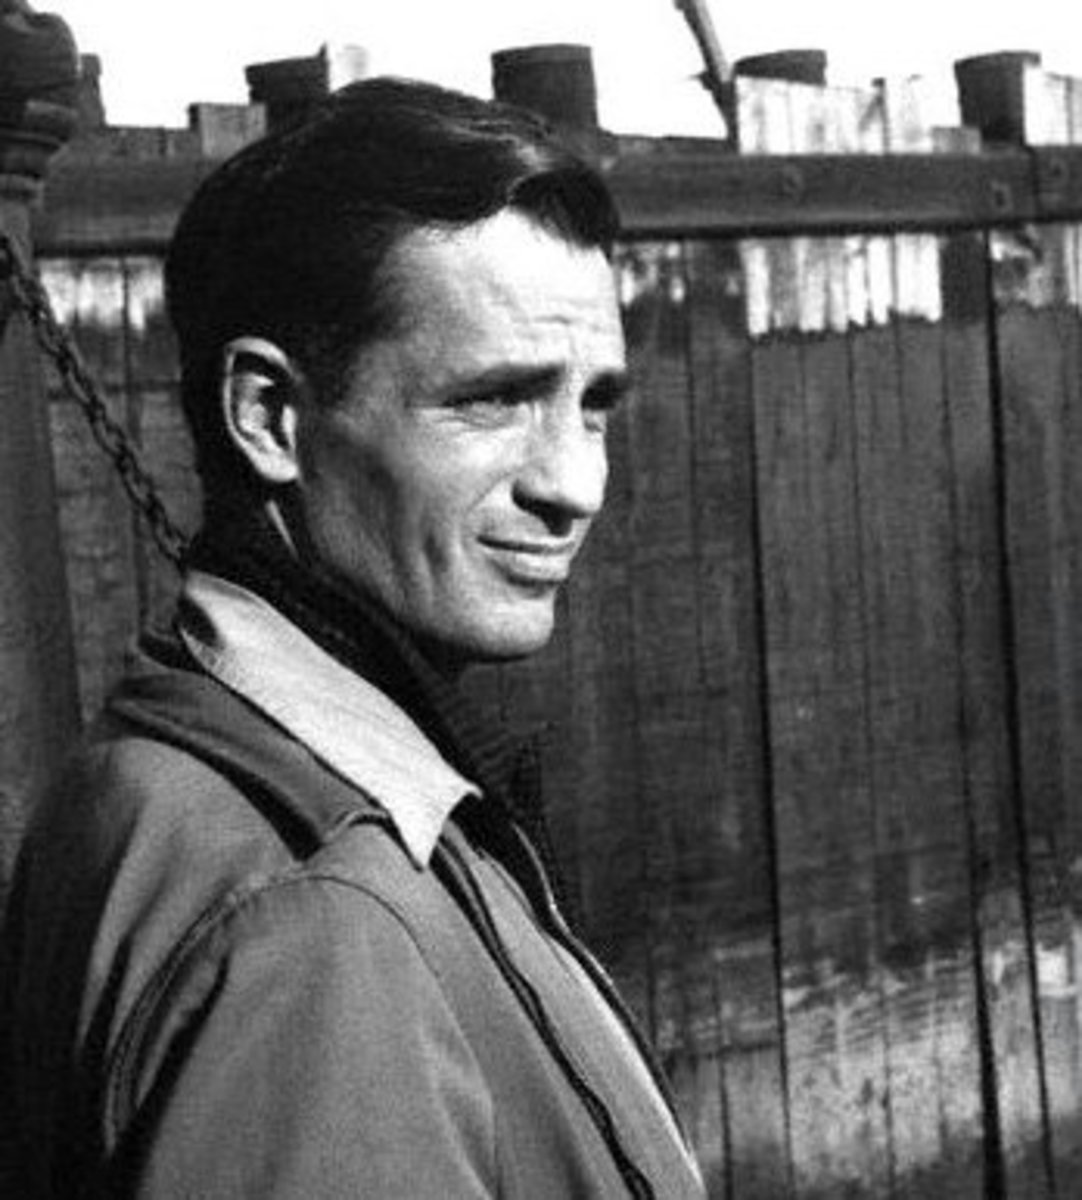 On the Road by Jack Kerouac: Dean Moriarty's Character Analysis